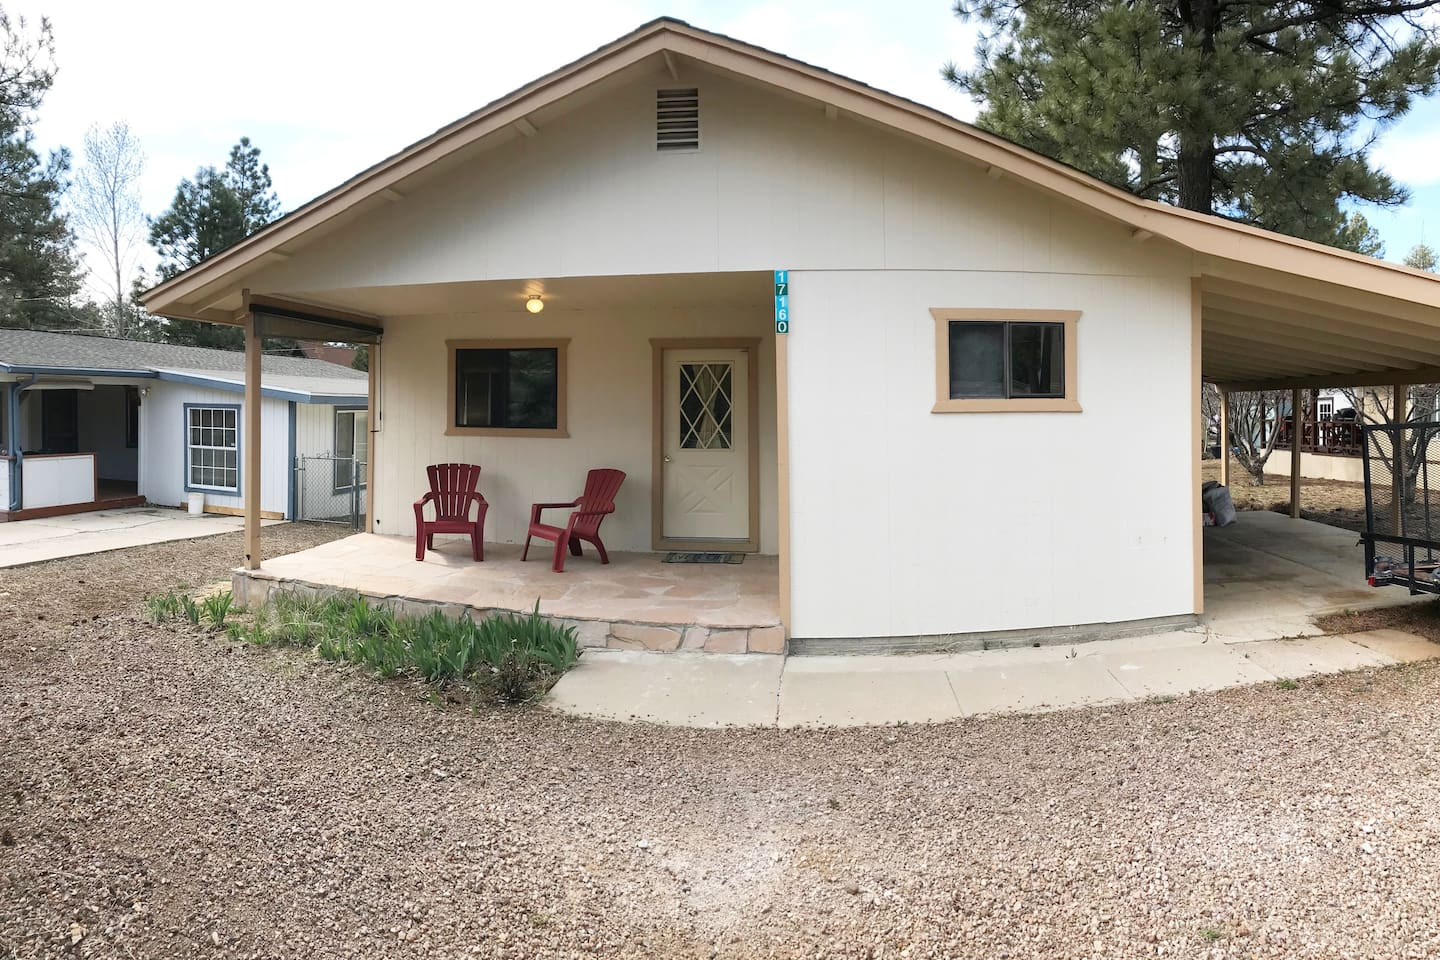 This is the front of our cozy little cabin - April 2019